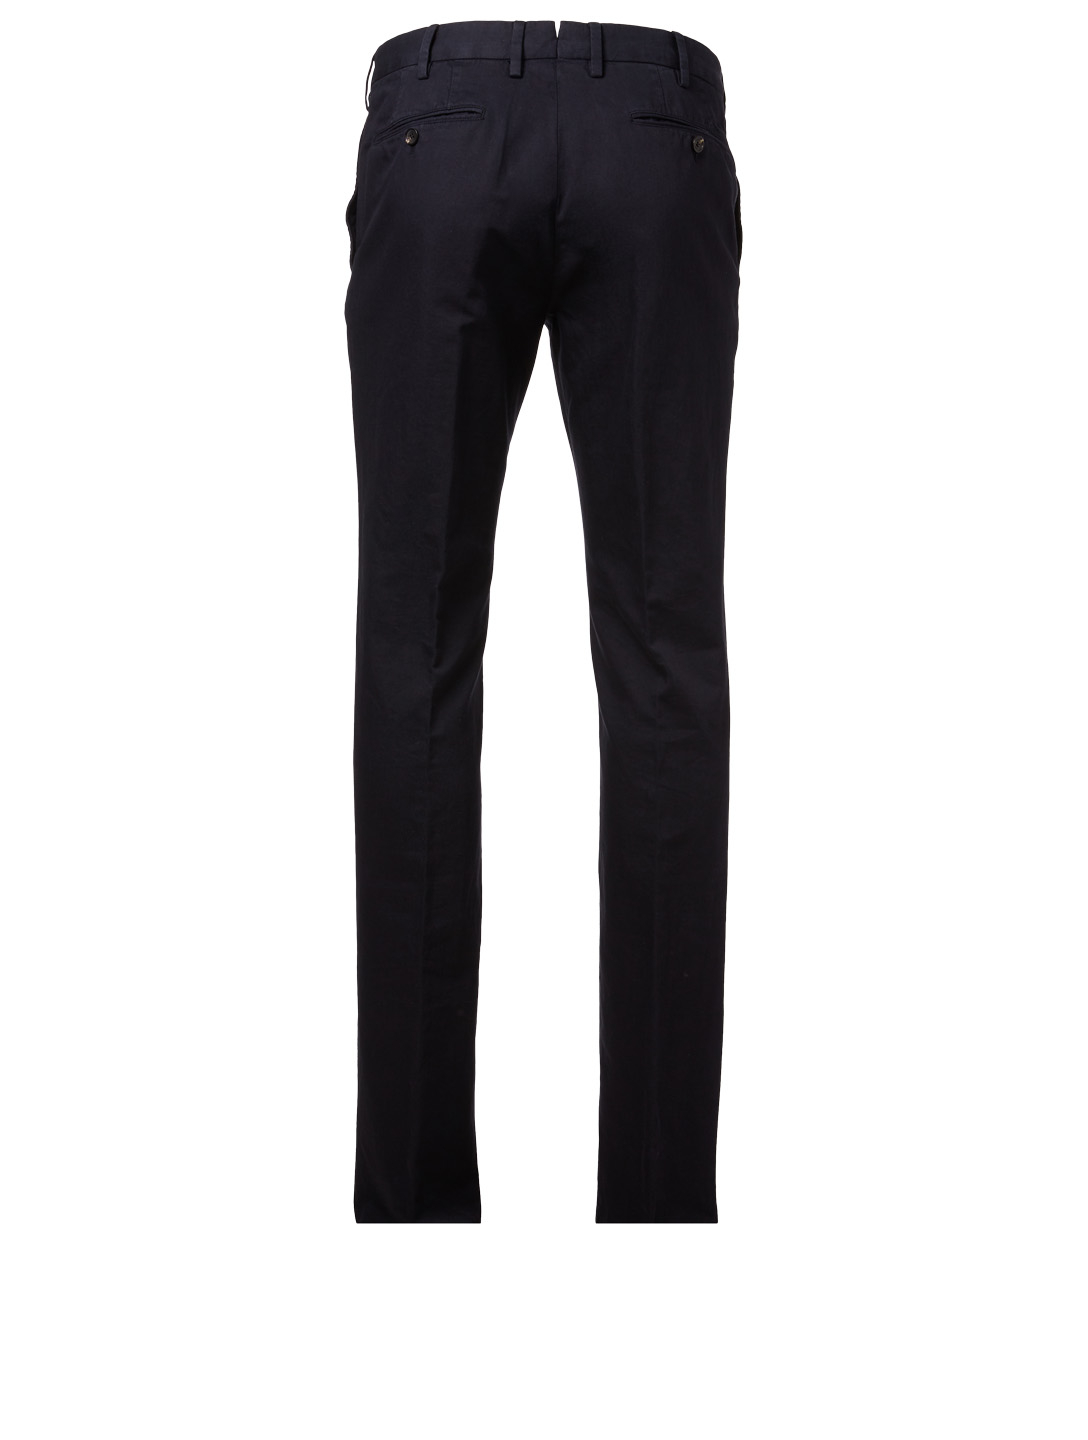 ERMENEGILDO ZEGNA Cotton And Linen Pants Men's Blue